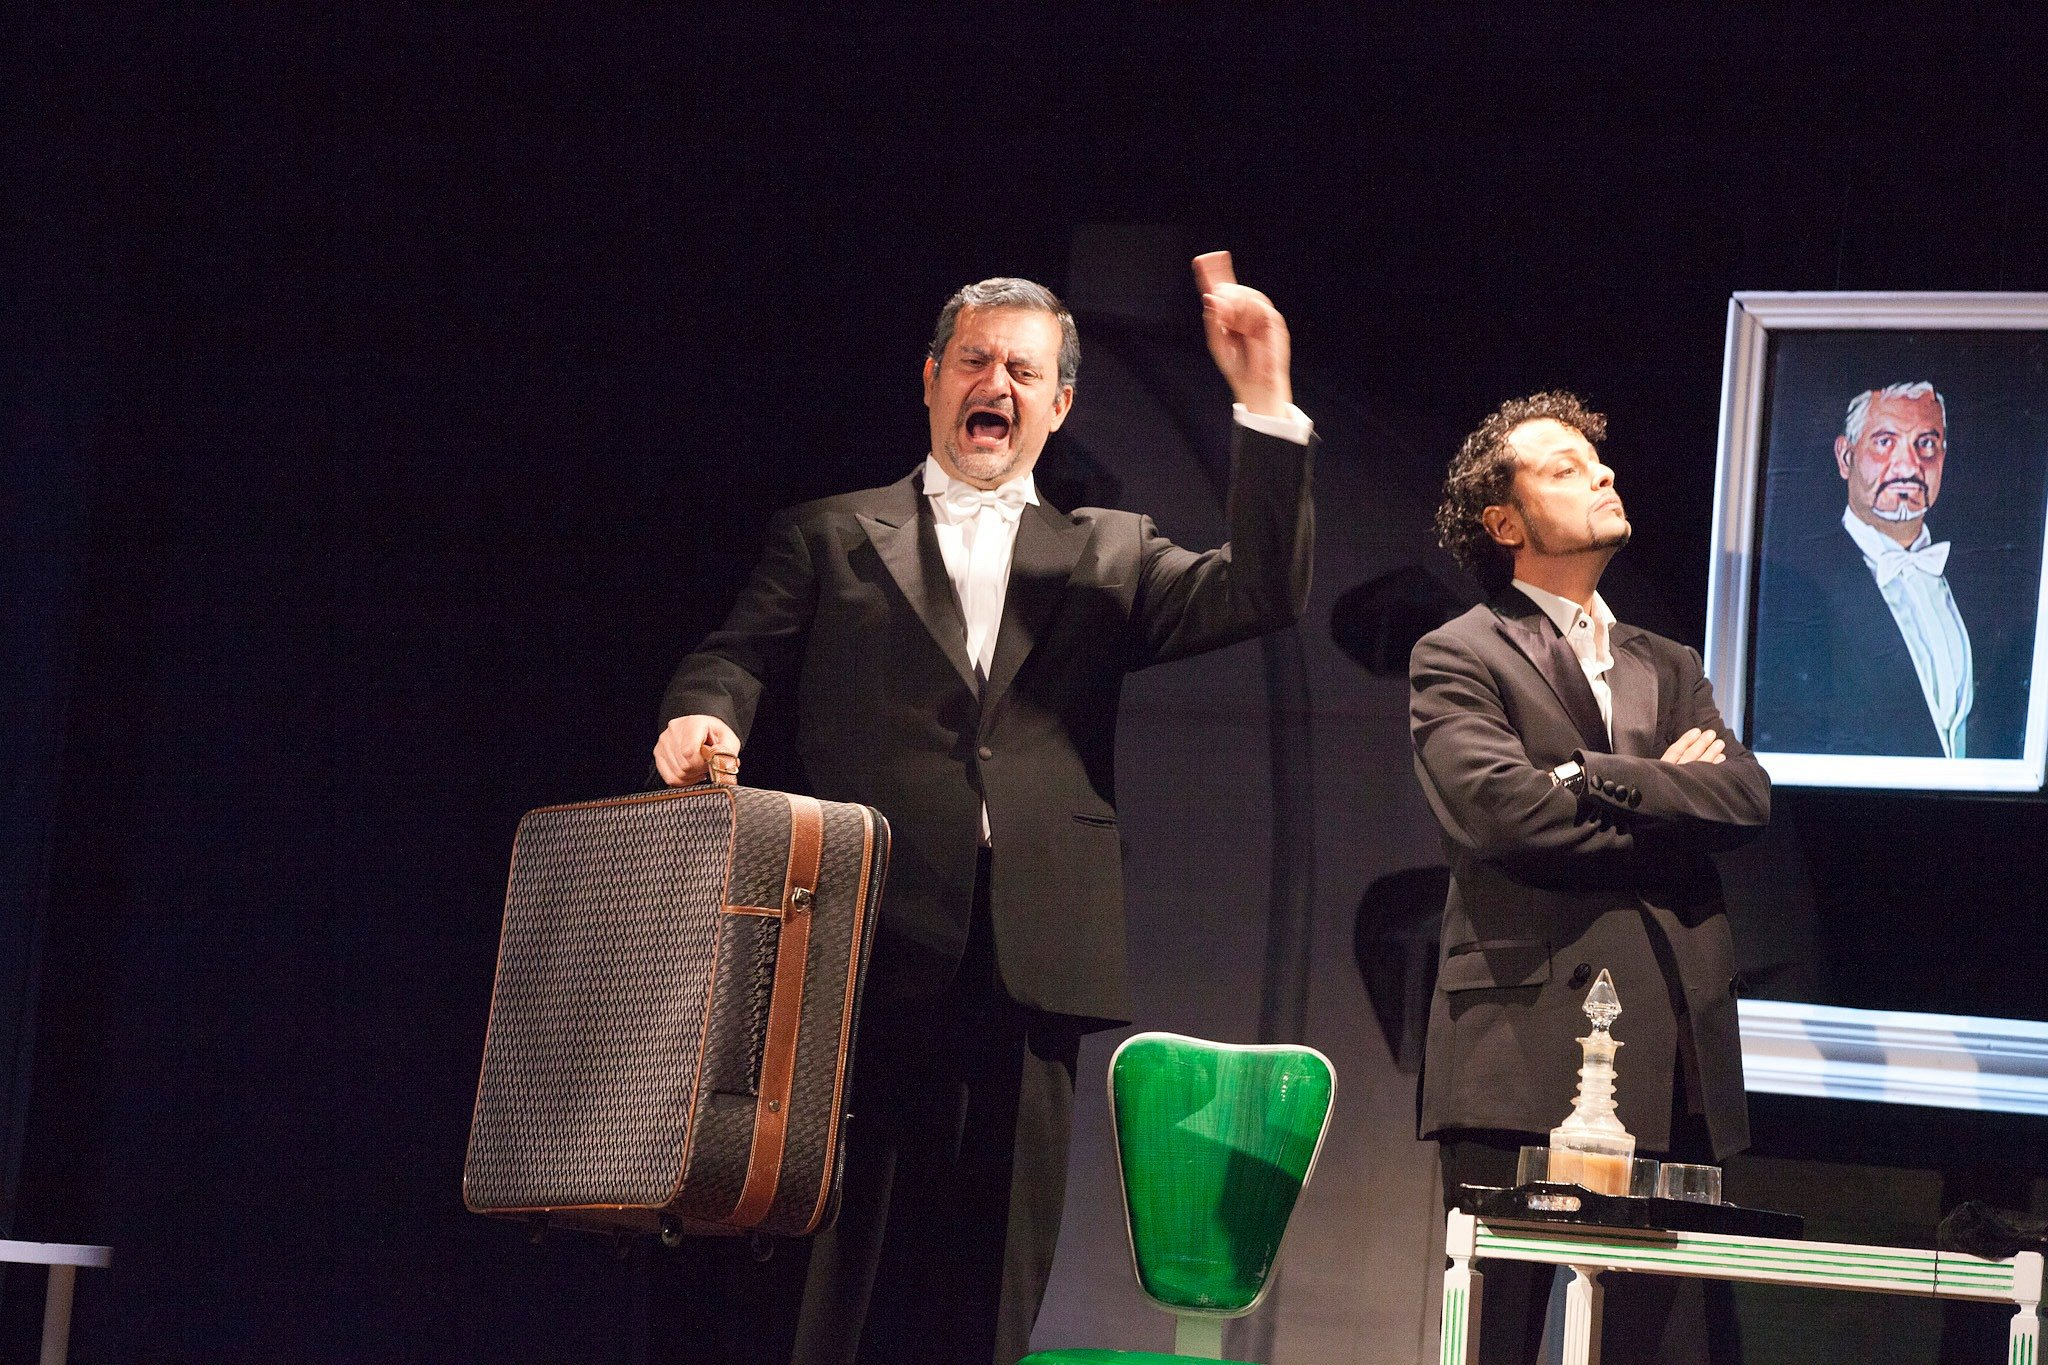 Don Pasquale 2013